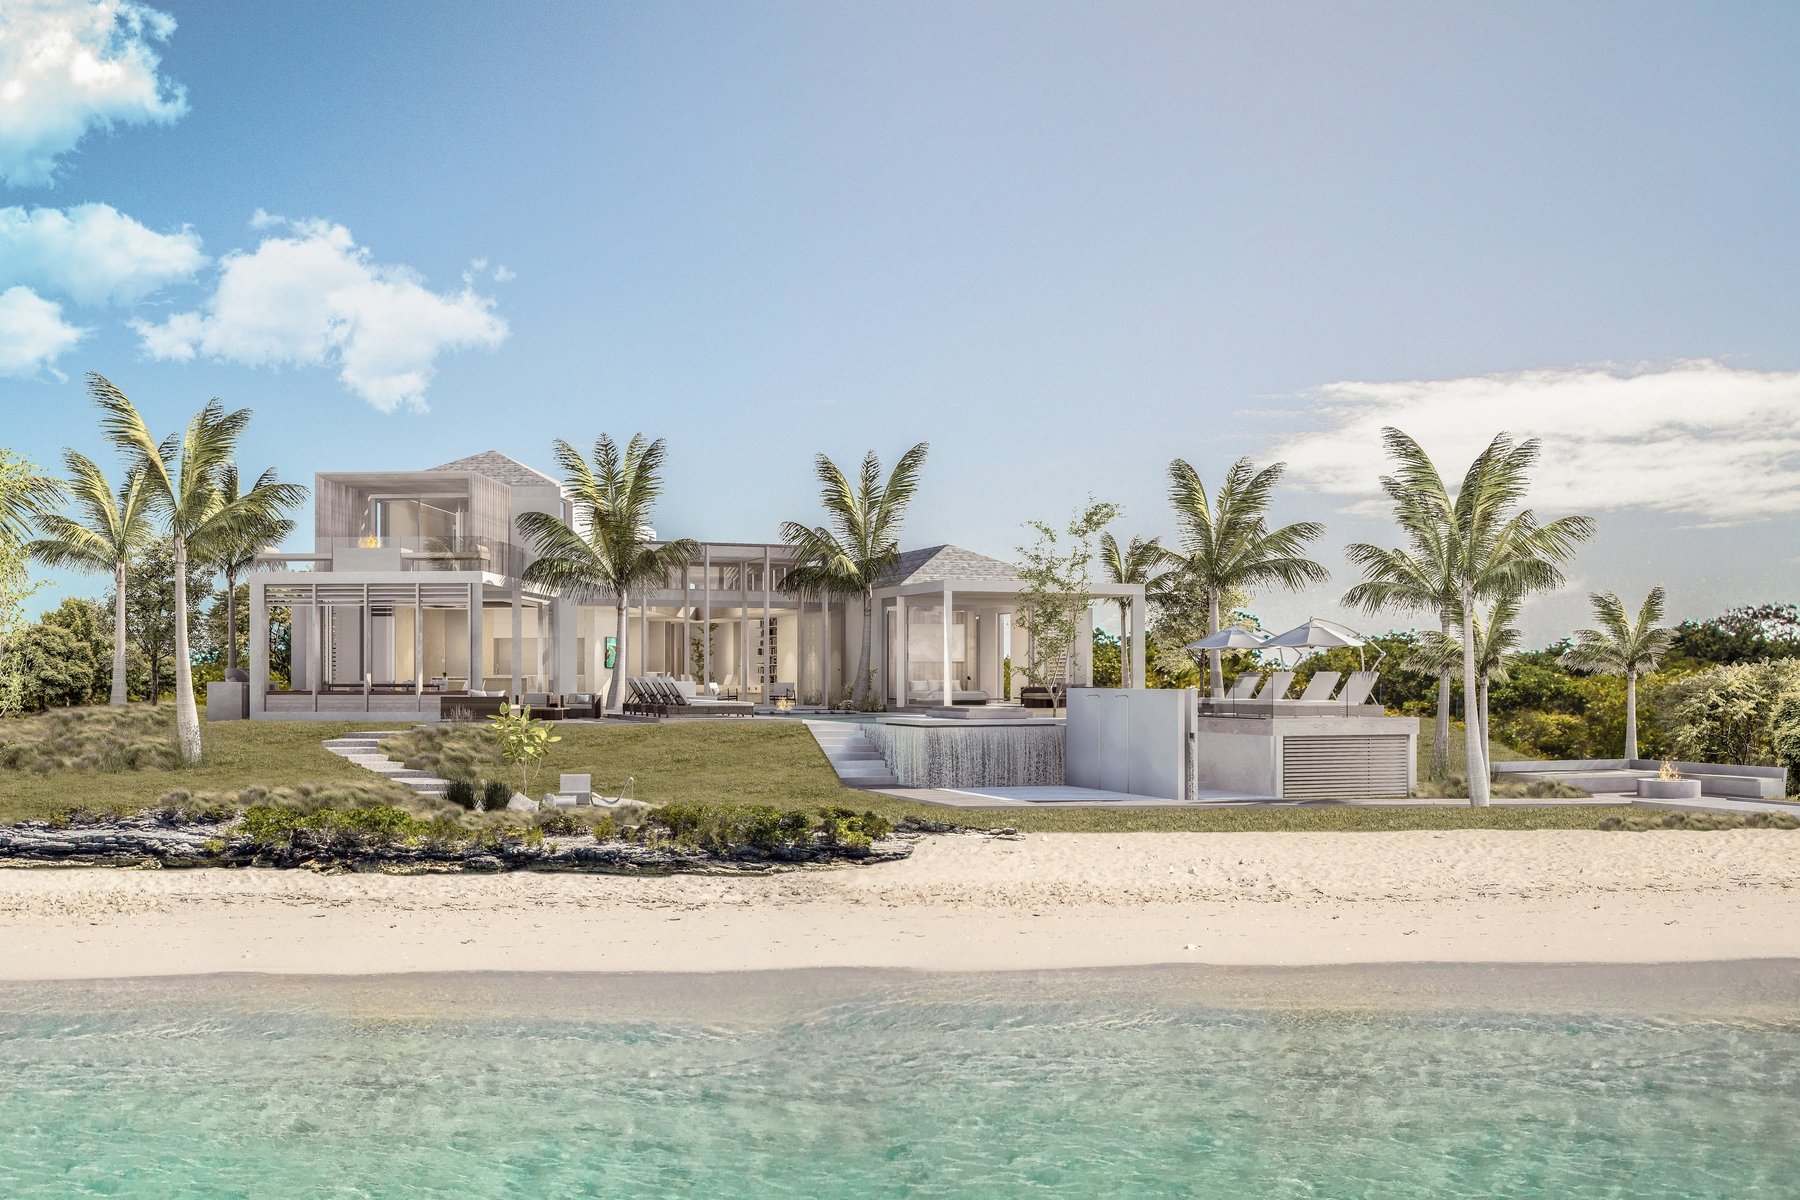 Single Family Home for Sale at Panorama Y House - Beachfront Lot 2 Blue Cay Estate, Leeward, Providenciales Turks And Caicos Islands